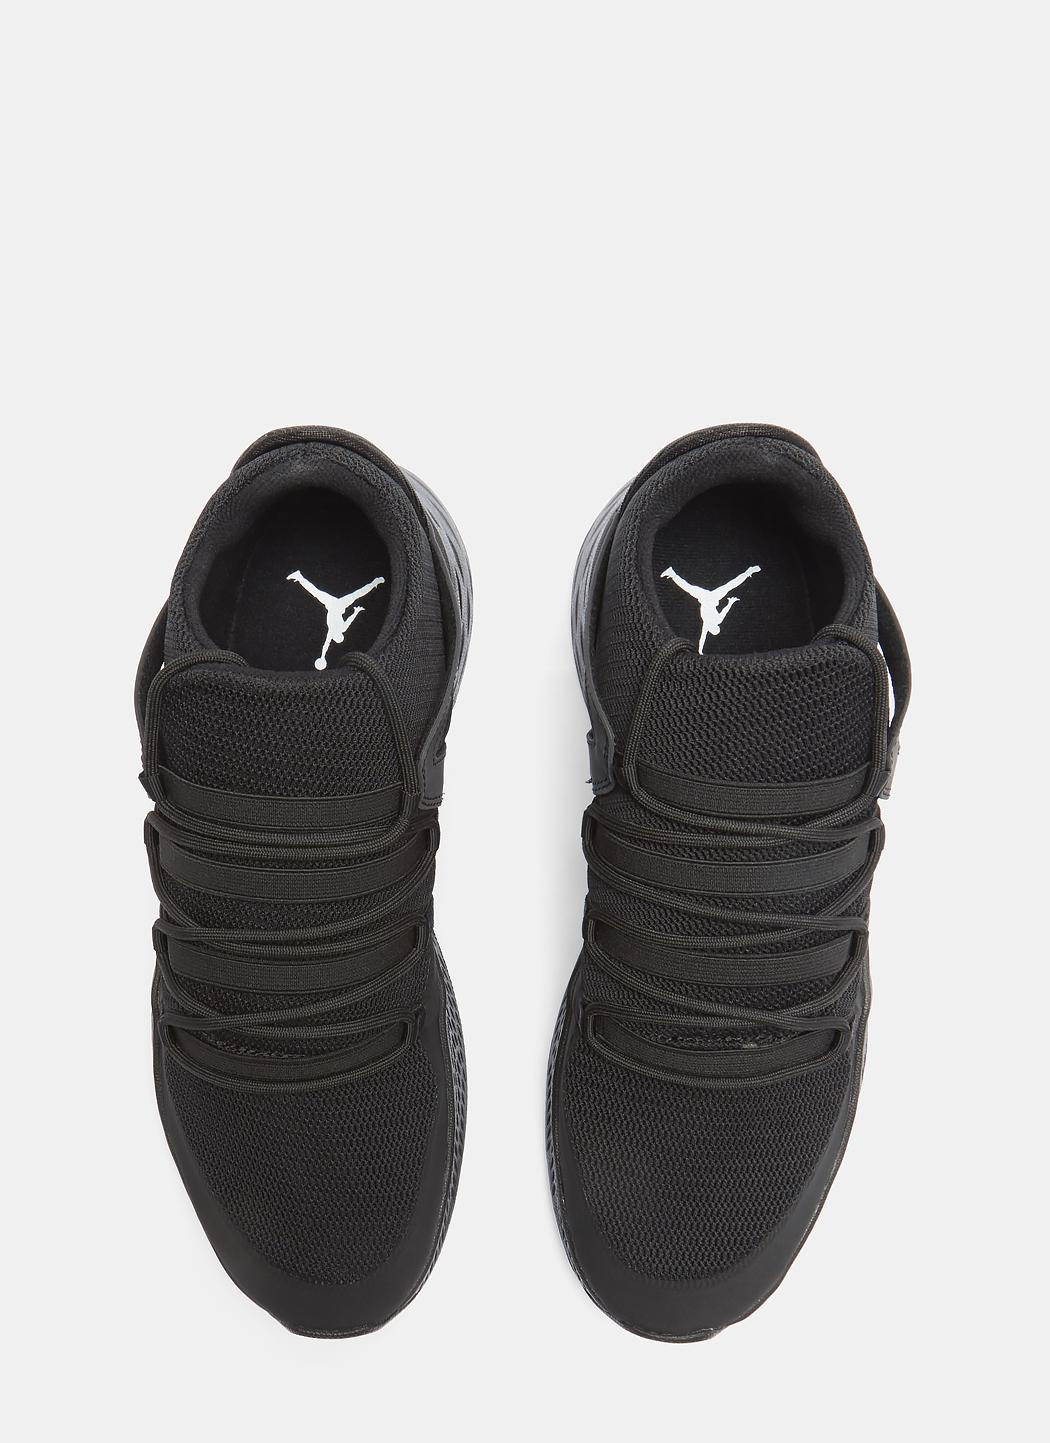 53258c65bddd Lyst - Nike Jordan Formula 23 Low Sneakers In Black in Black for Men